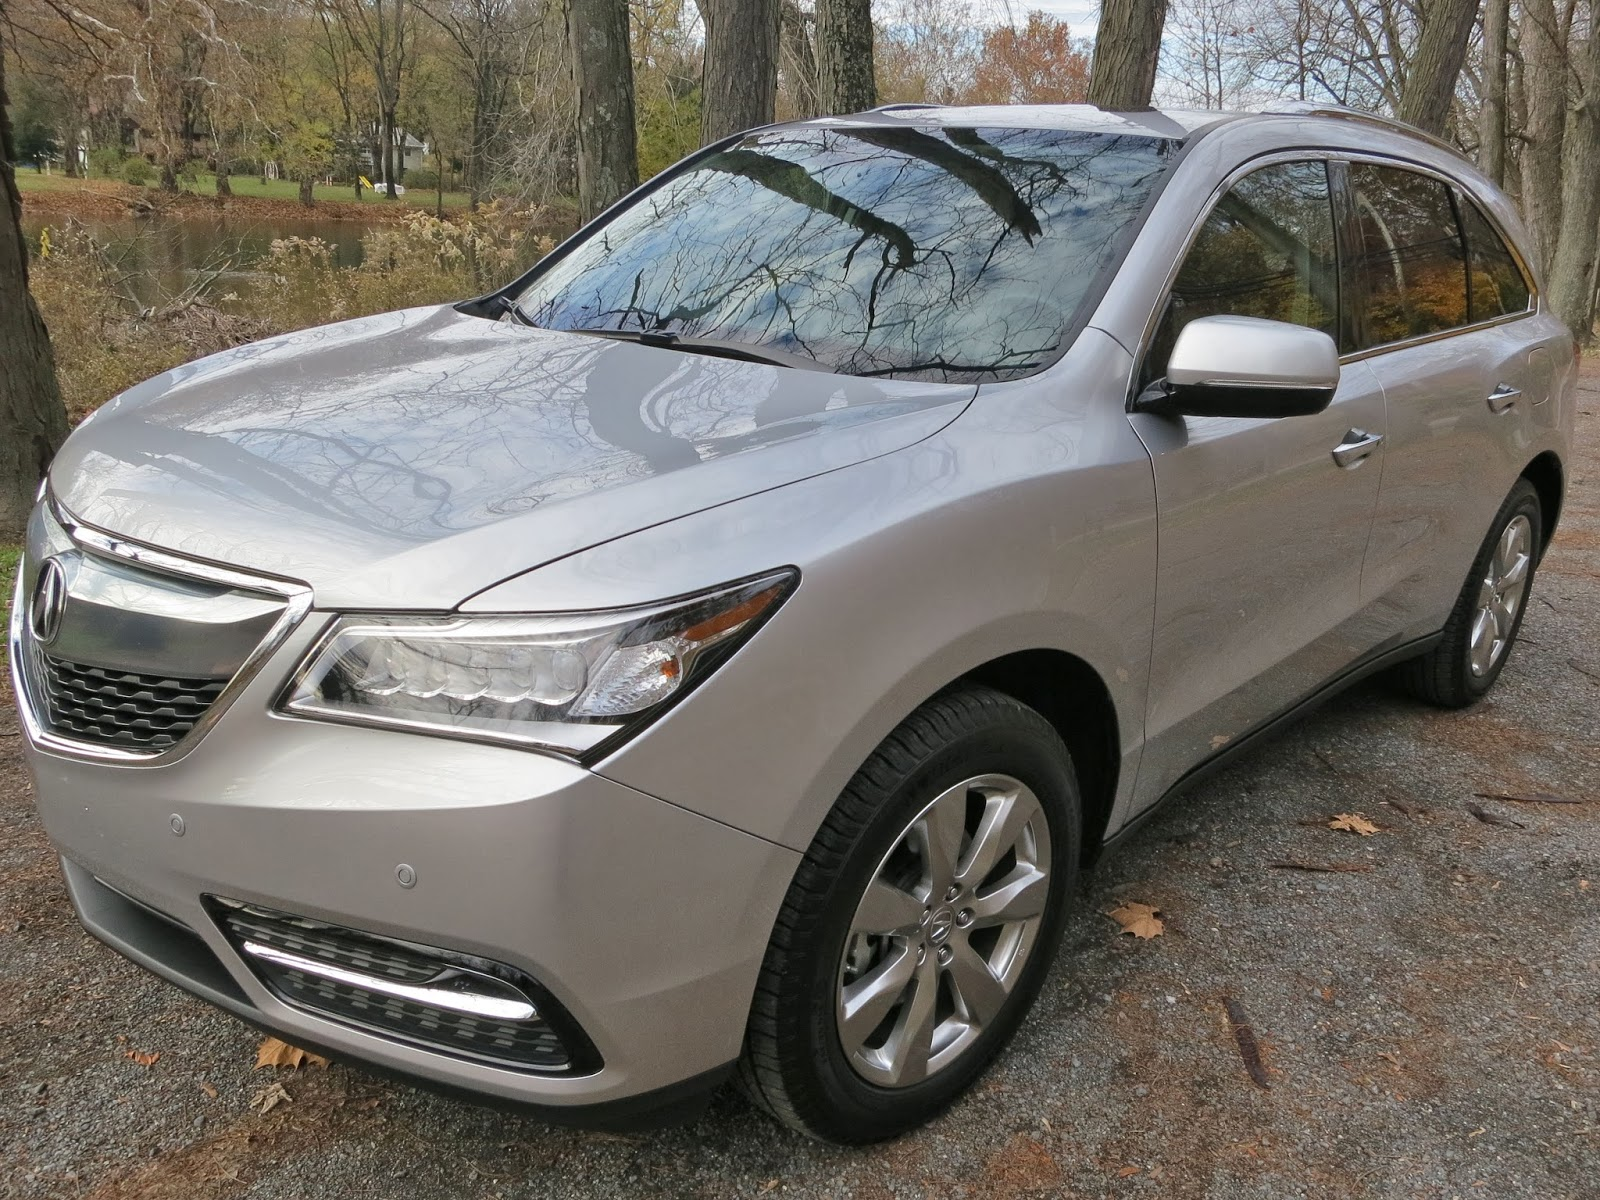 mdx marketing butler auto blue launches s group blog blitz acura